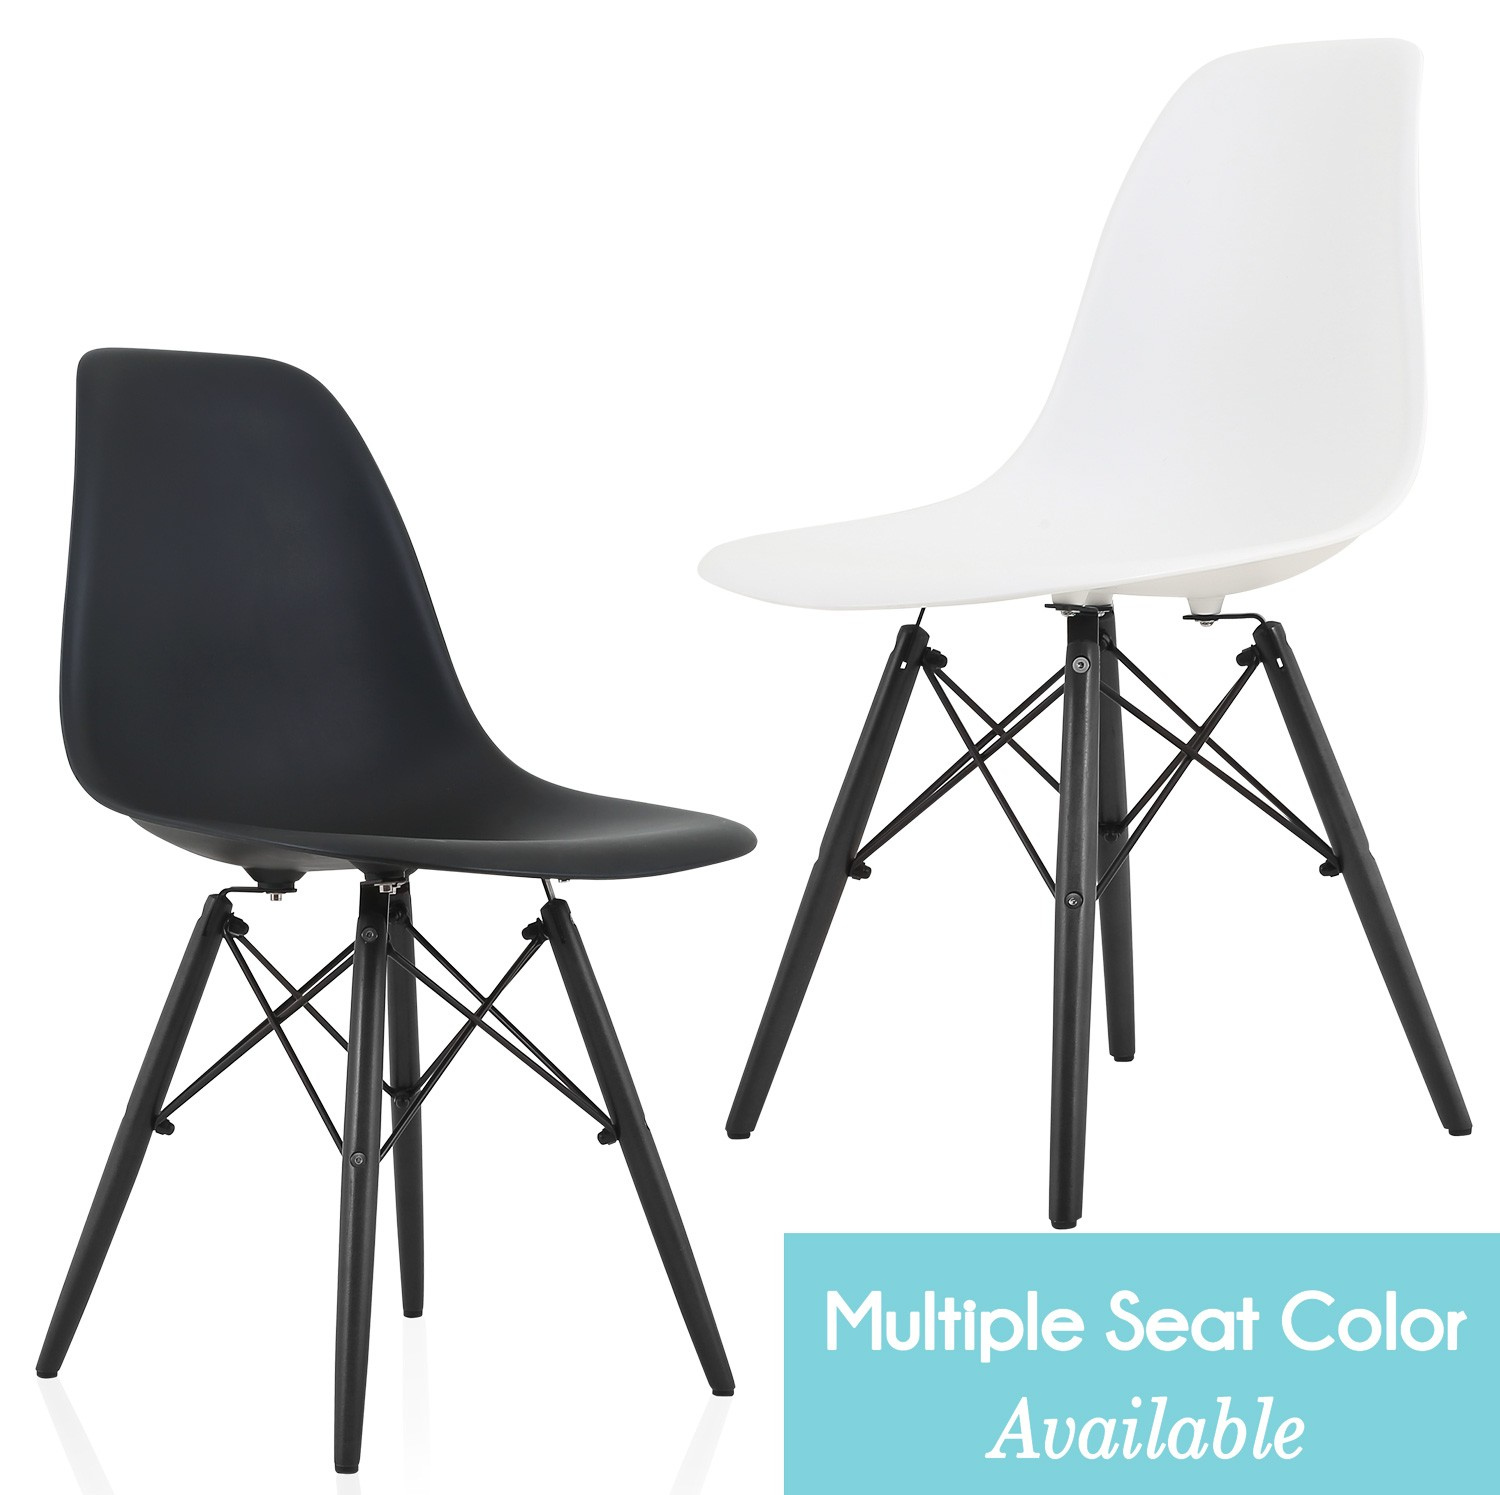 eiffel chair wood legs high chairs target australia eames style dsw molded plastic dining side with black your purchase receive at no cost